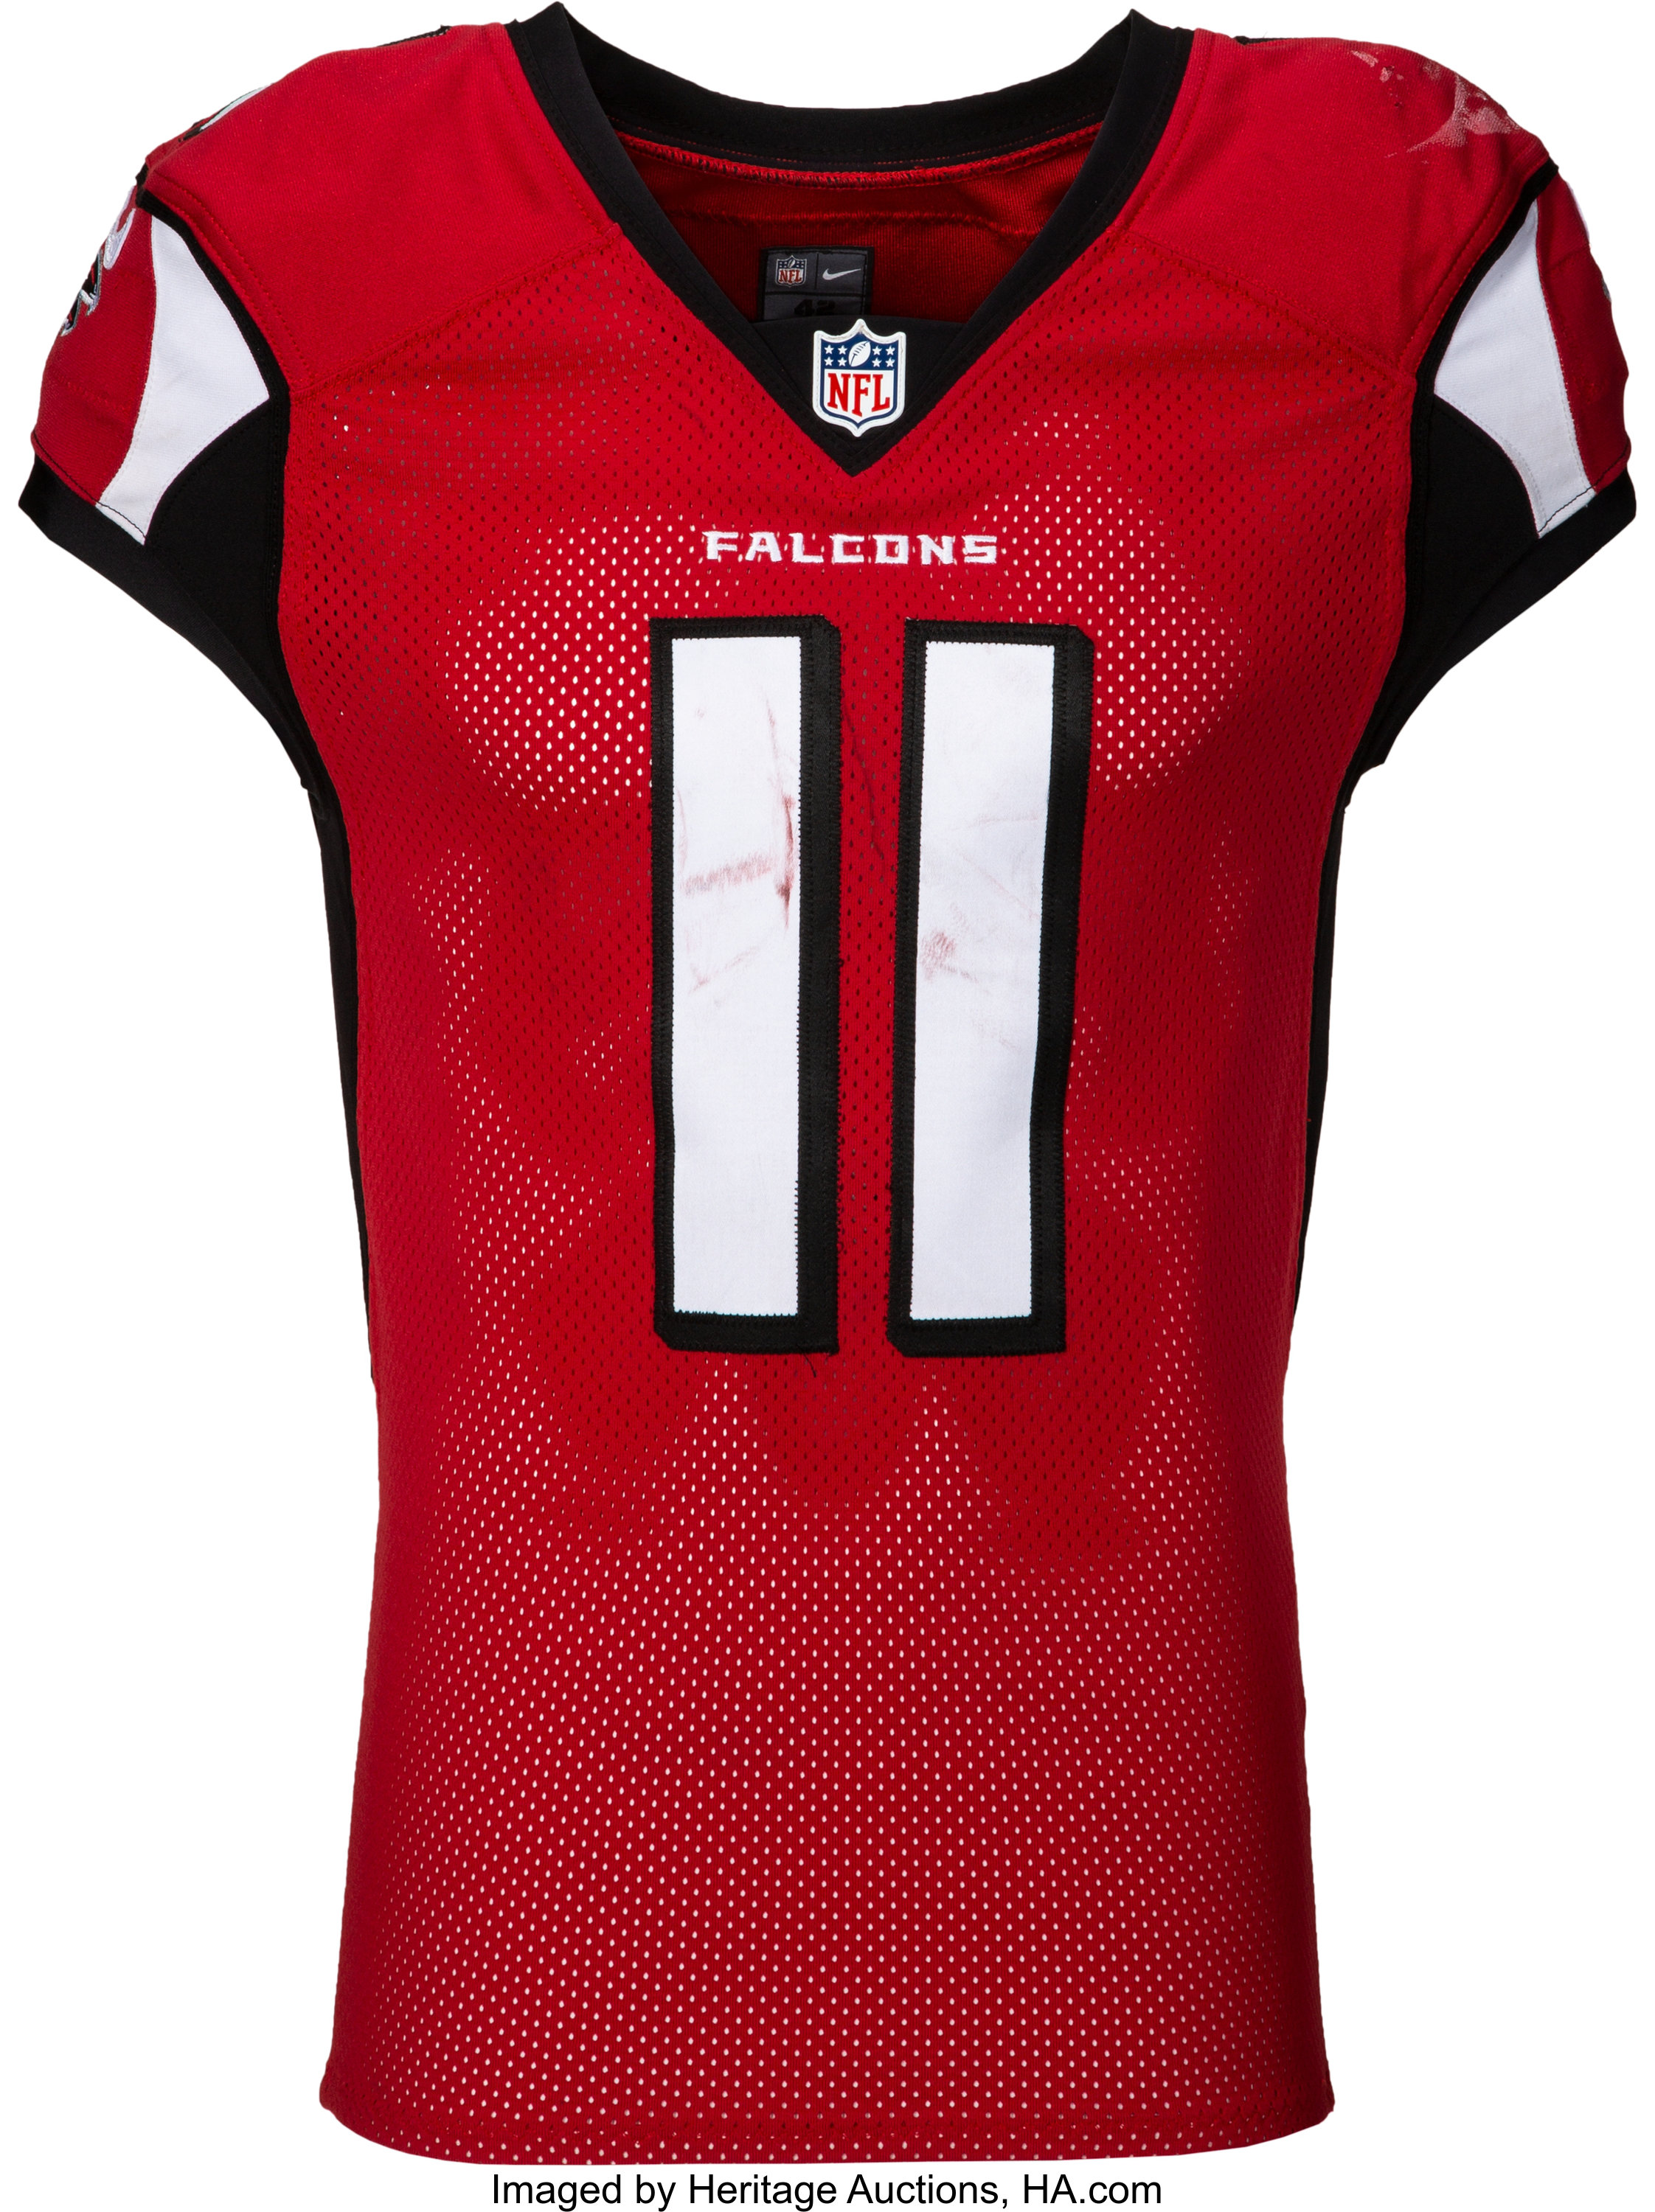 2016 Julio Jones Game Worn Unwashed Atlanta Falcons Jersey Photo Lot 50730 Heritage Auctions